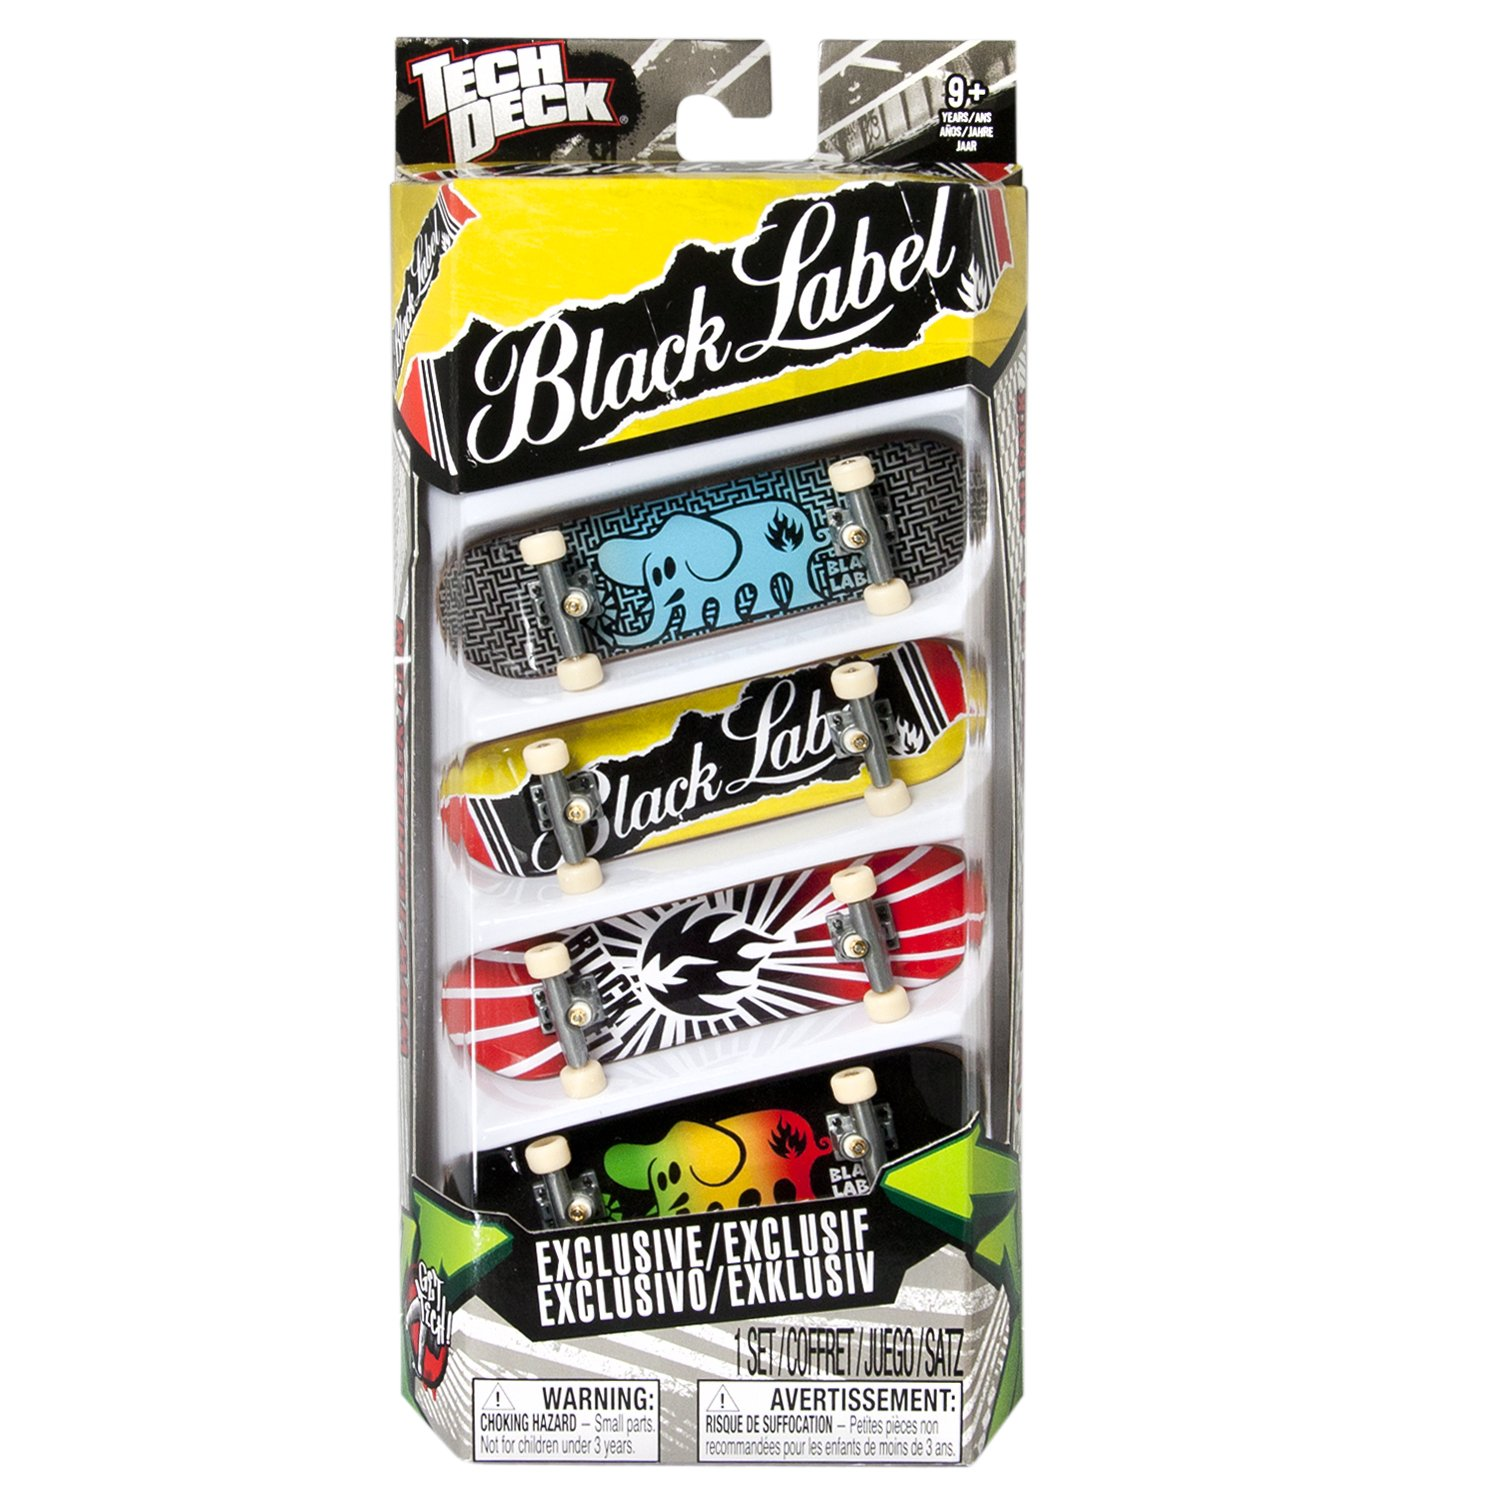 Tech Deck 96MM Fingerboards 4 Pack (Styles vary) by Spin Master (Image #3)